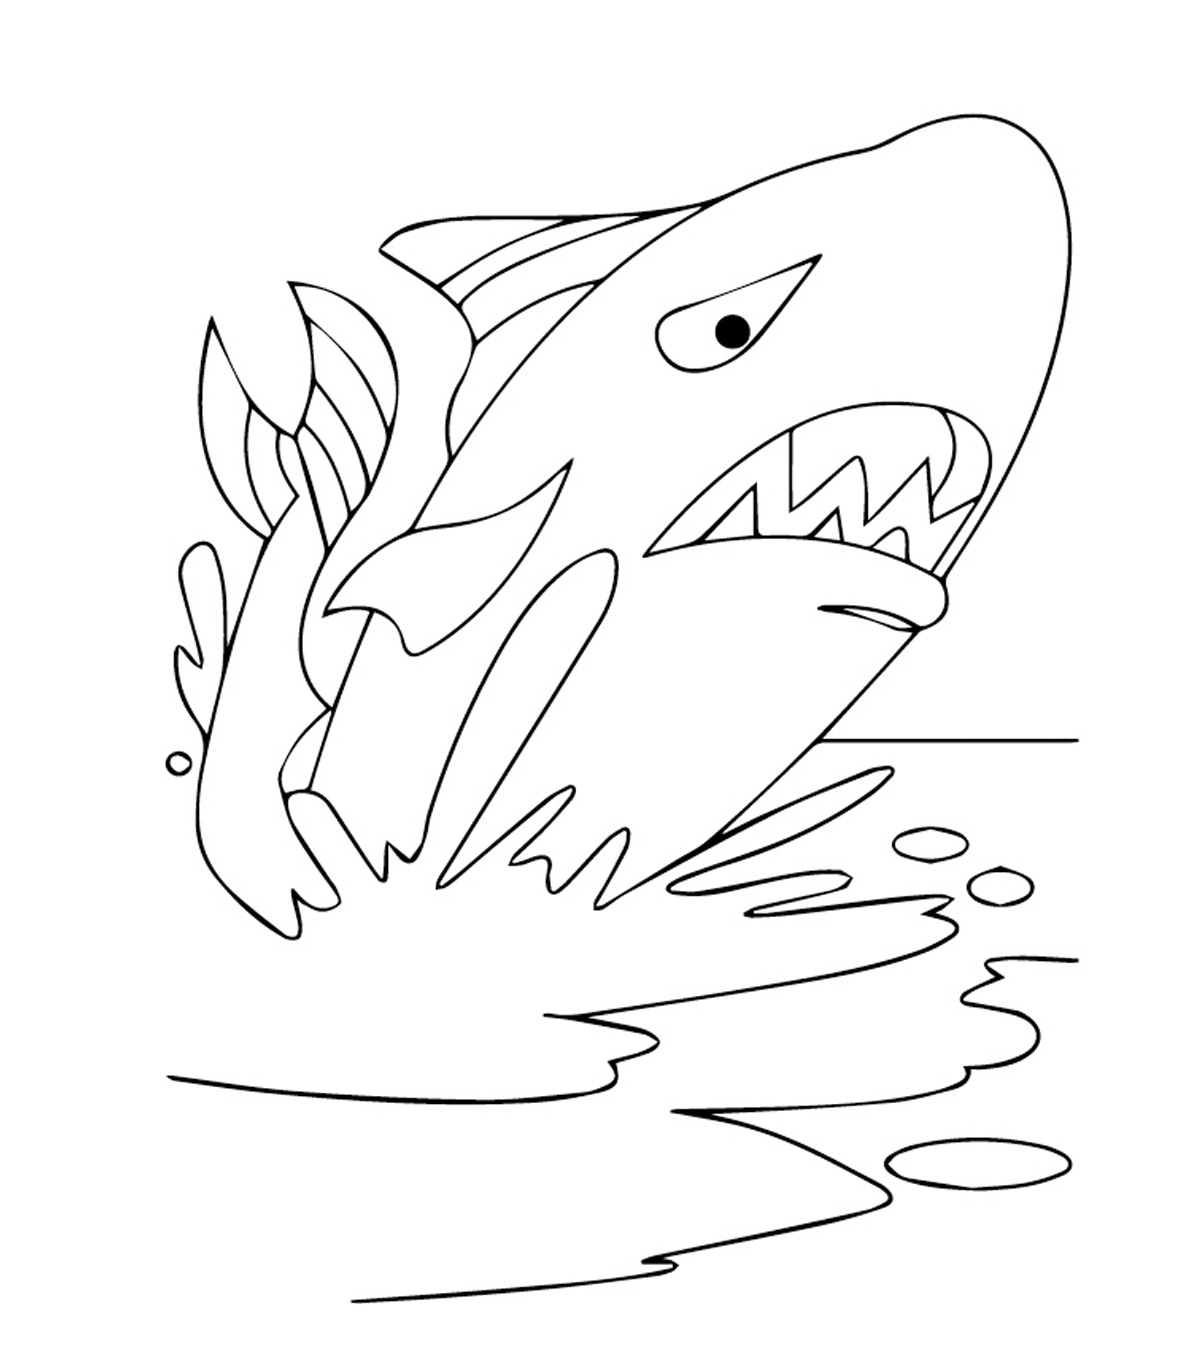 Killer Whale (Orca) coloring page - Animals Town - animals color ... | 1350x1200